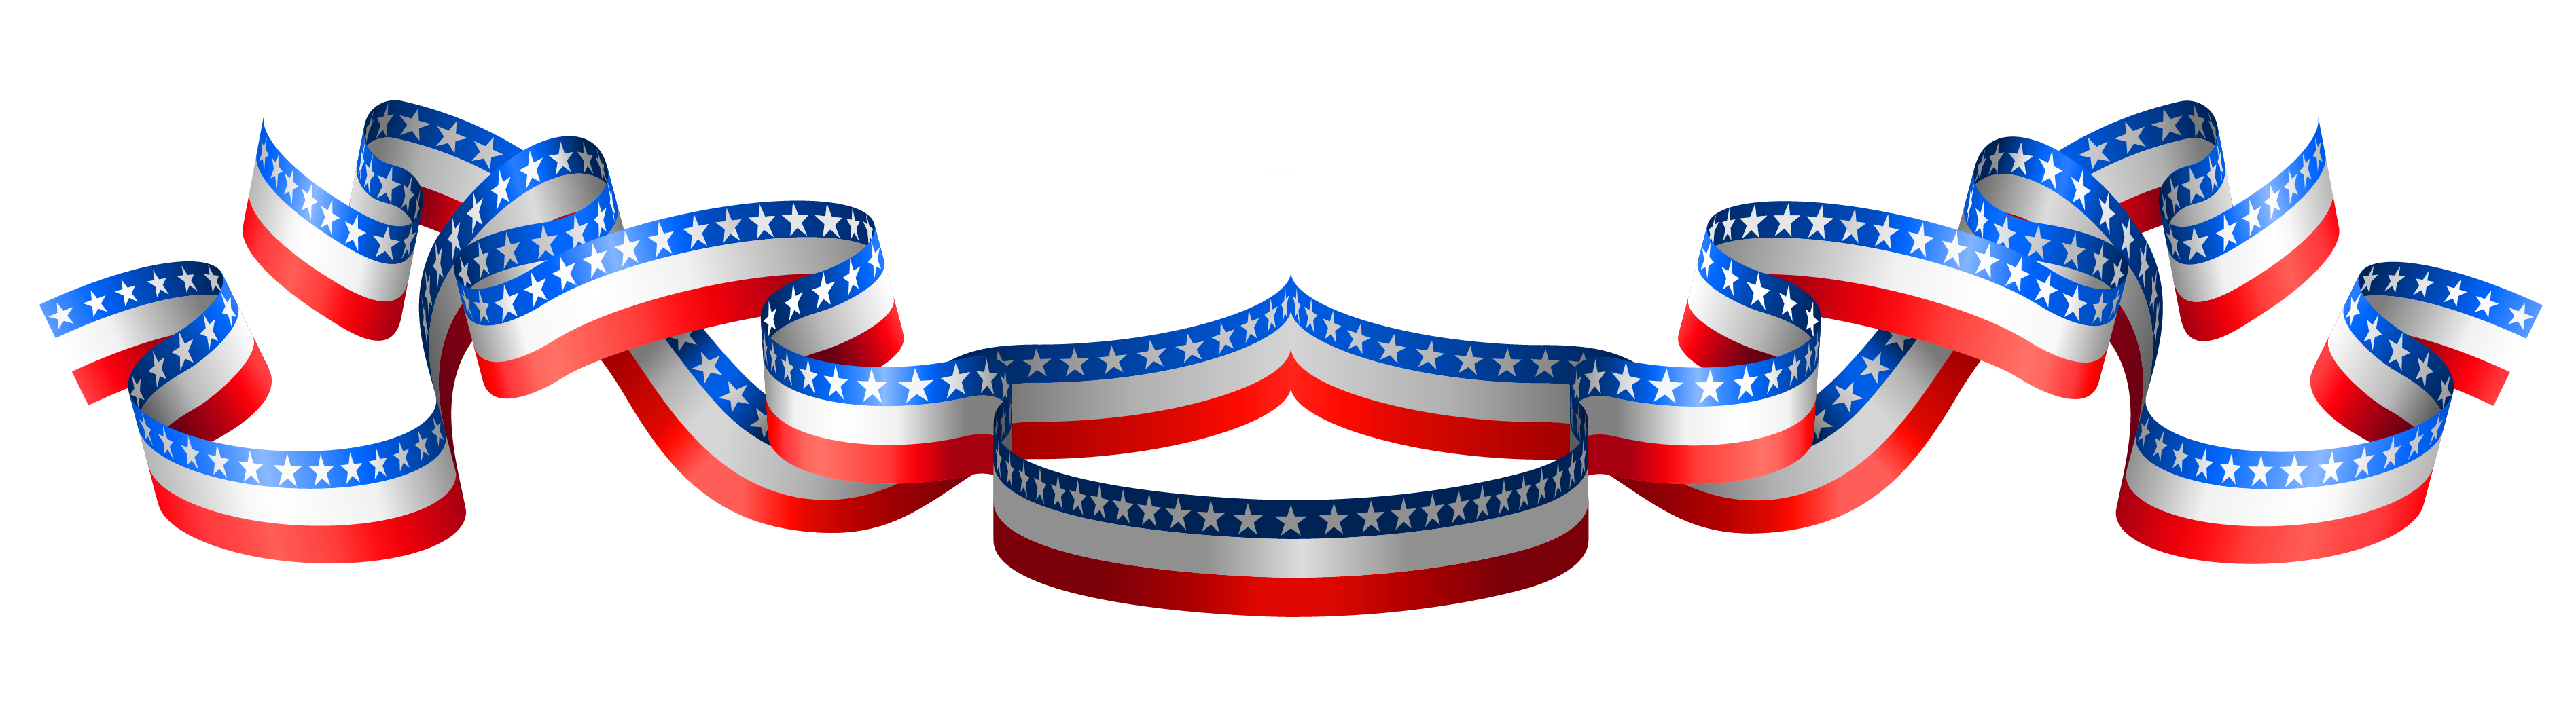 Usa flag band png. July clipart decoration